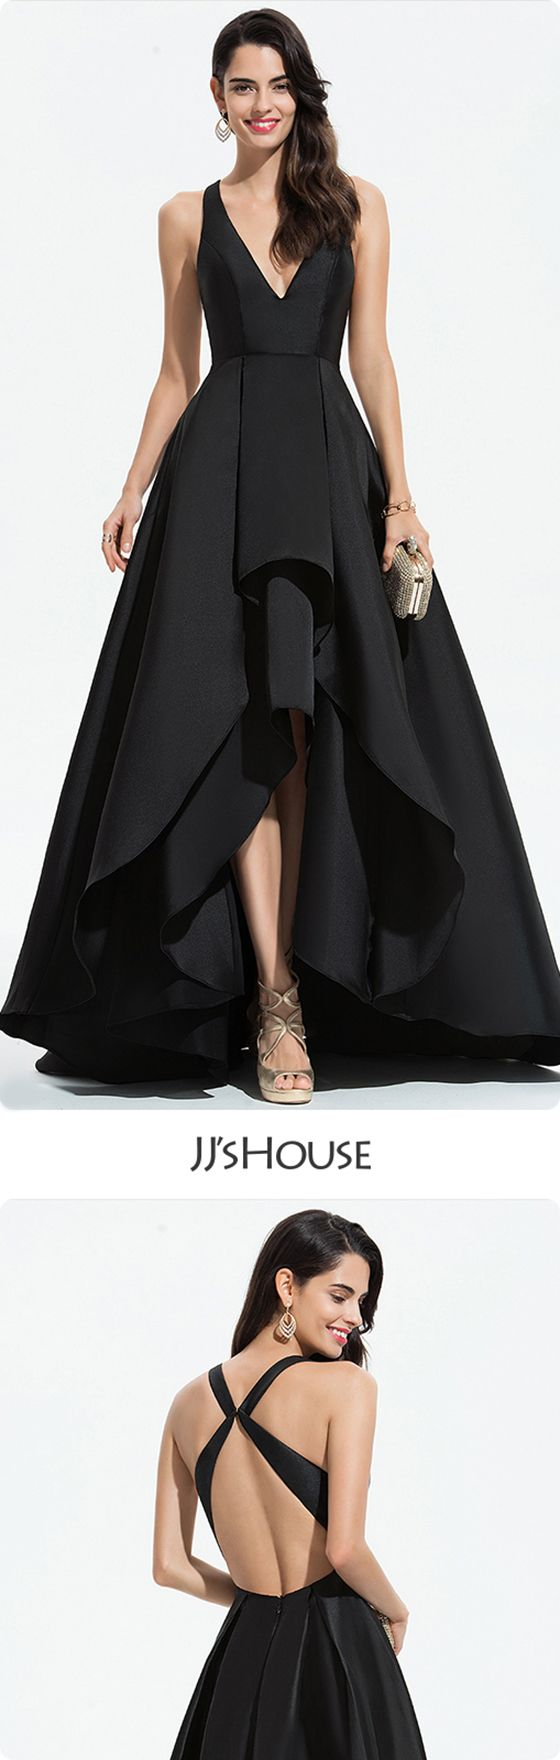 A-Line V-neck Asymmetrical Satin Prom Dresses With Cascading Ruffles #JJsHouse #PromDresses